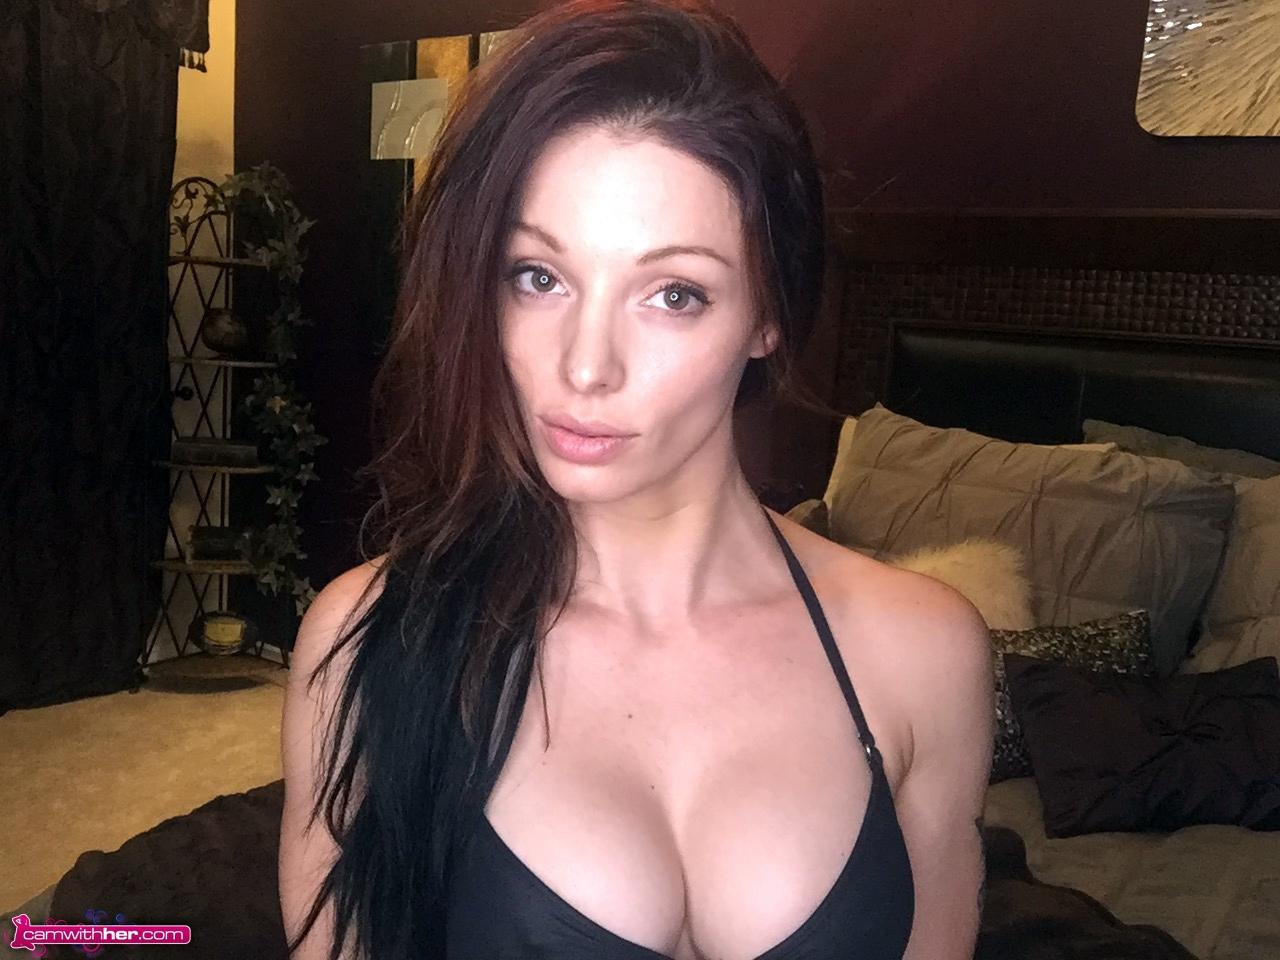 Bruentte Babe Angelina Stevens Taking Some Sexy Selfies In -3873